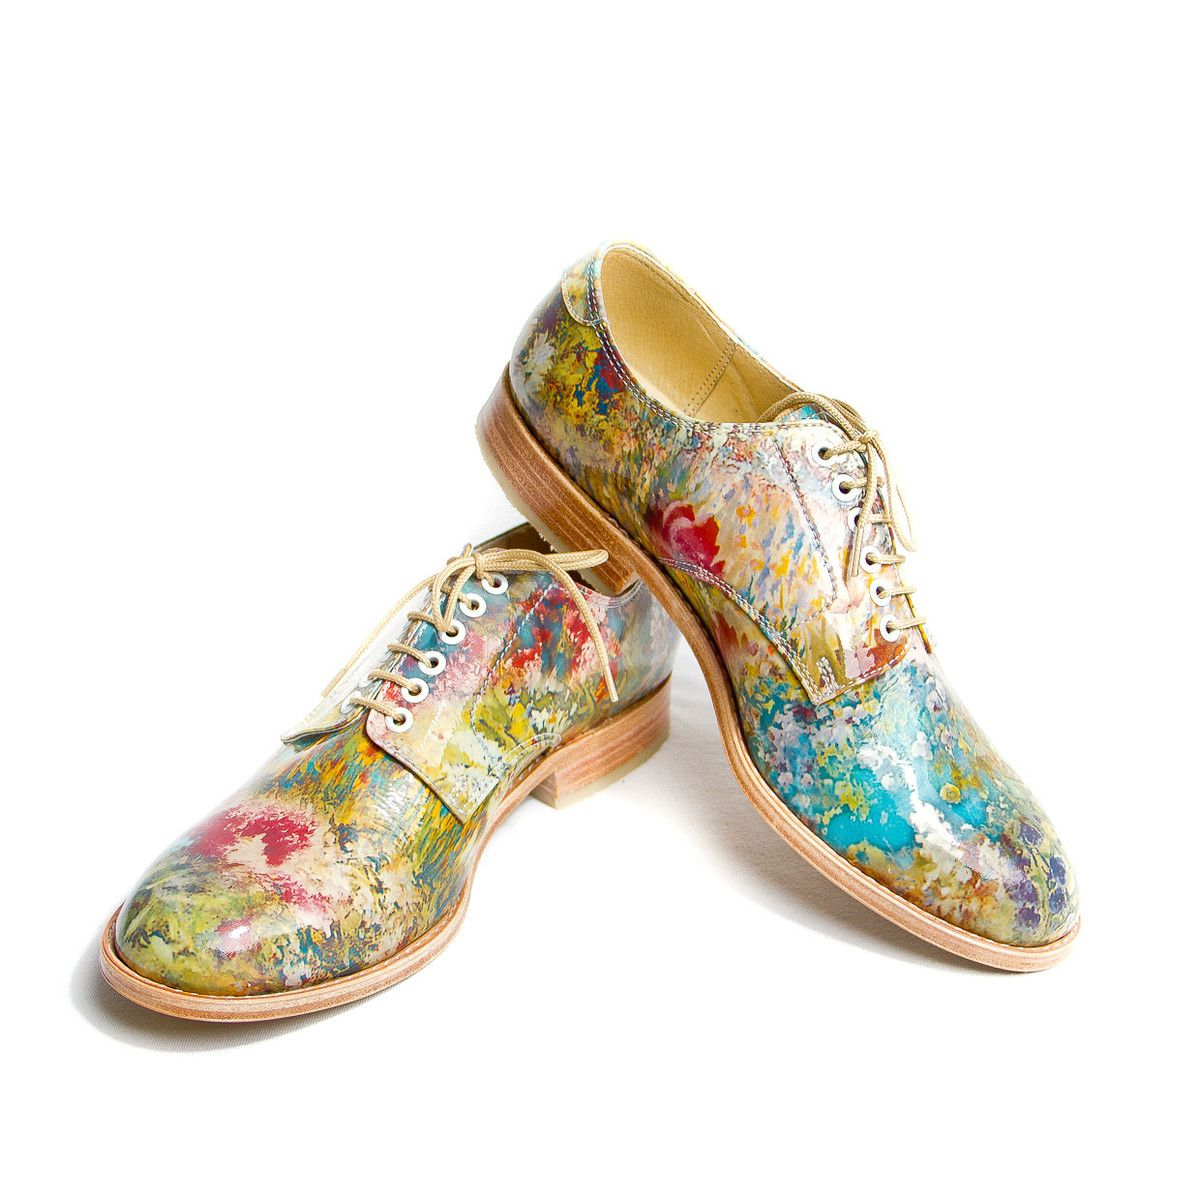 How to flowered wear shoes